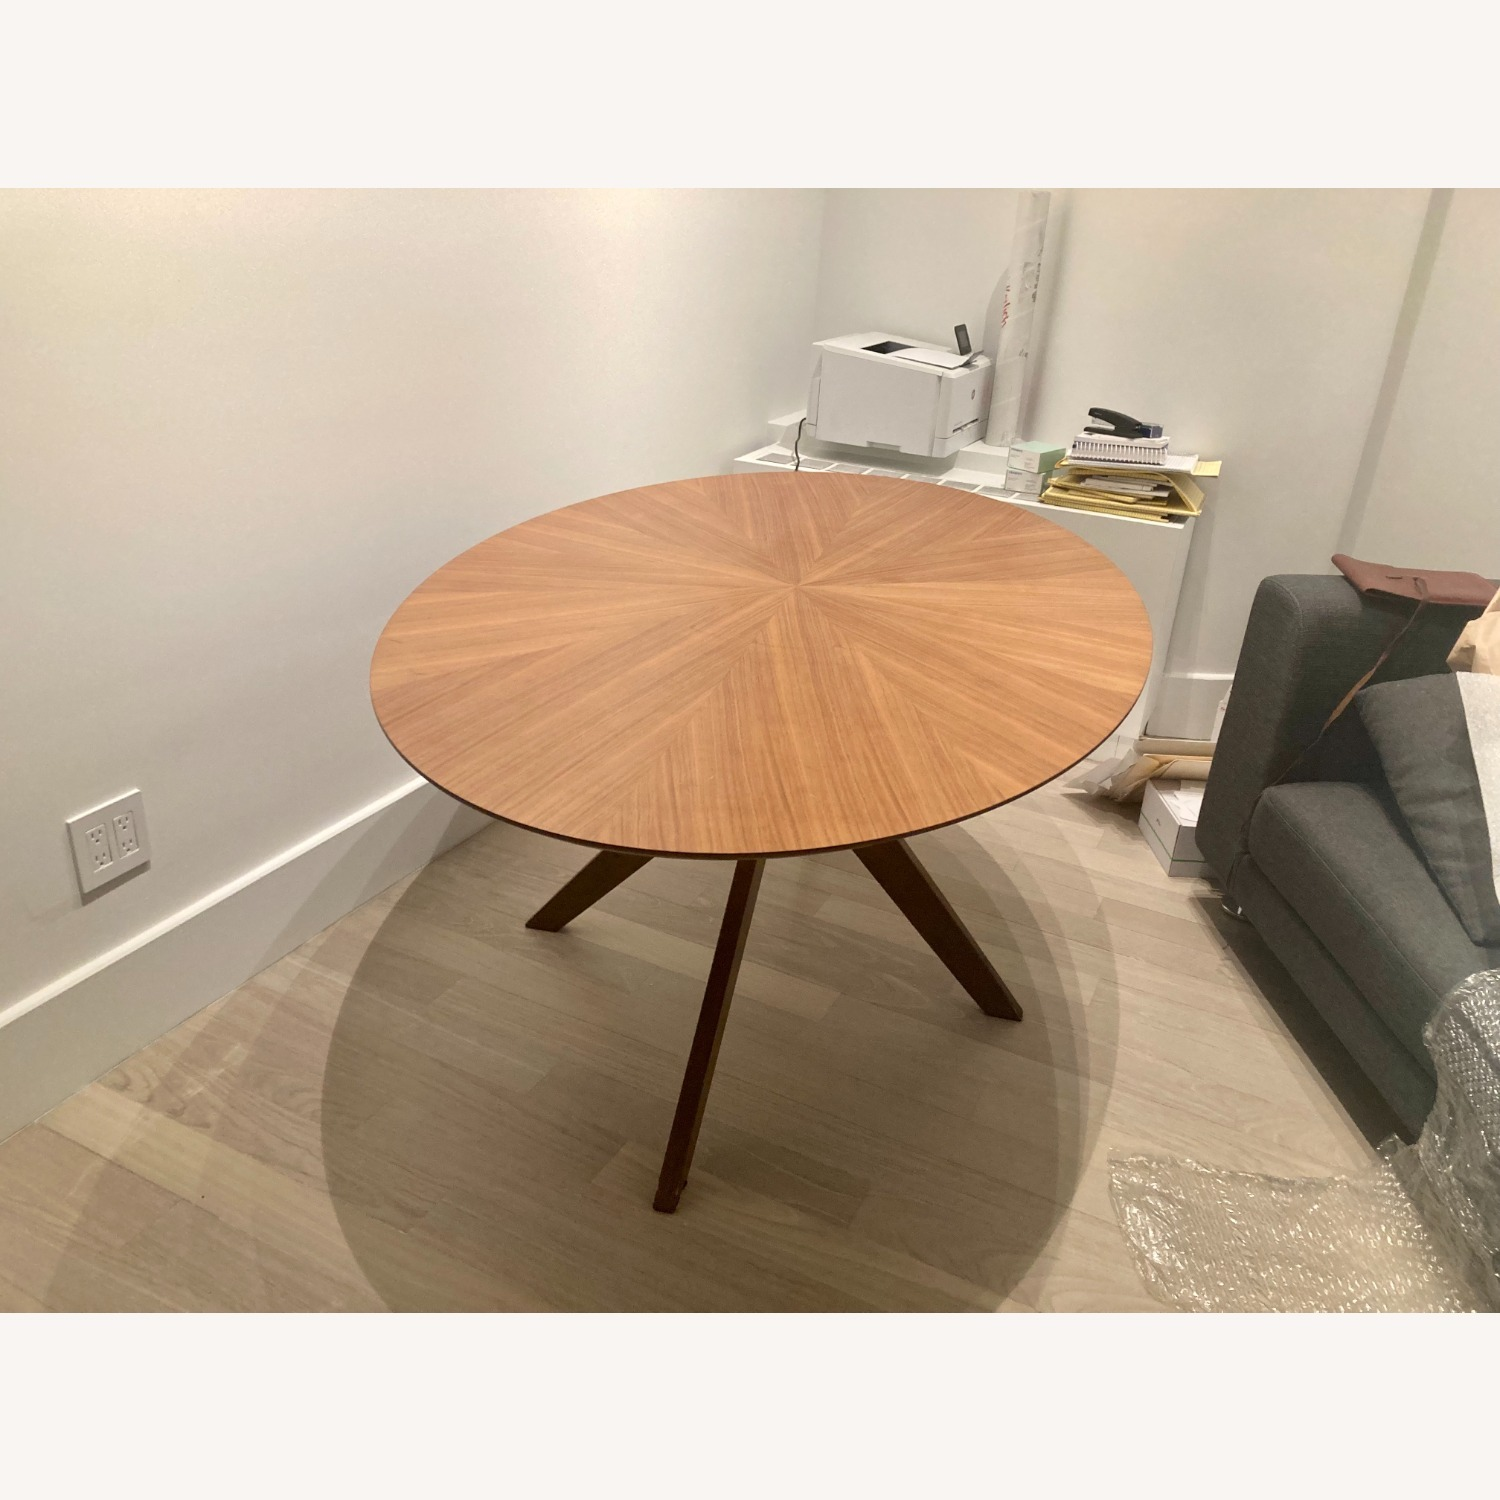 Article Conan Oval Dining Table - image-1